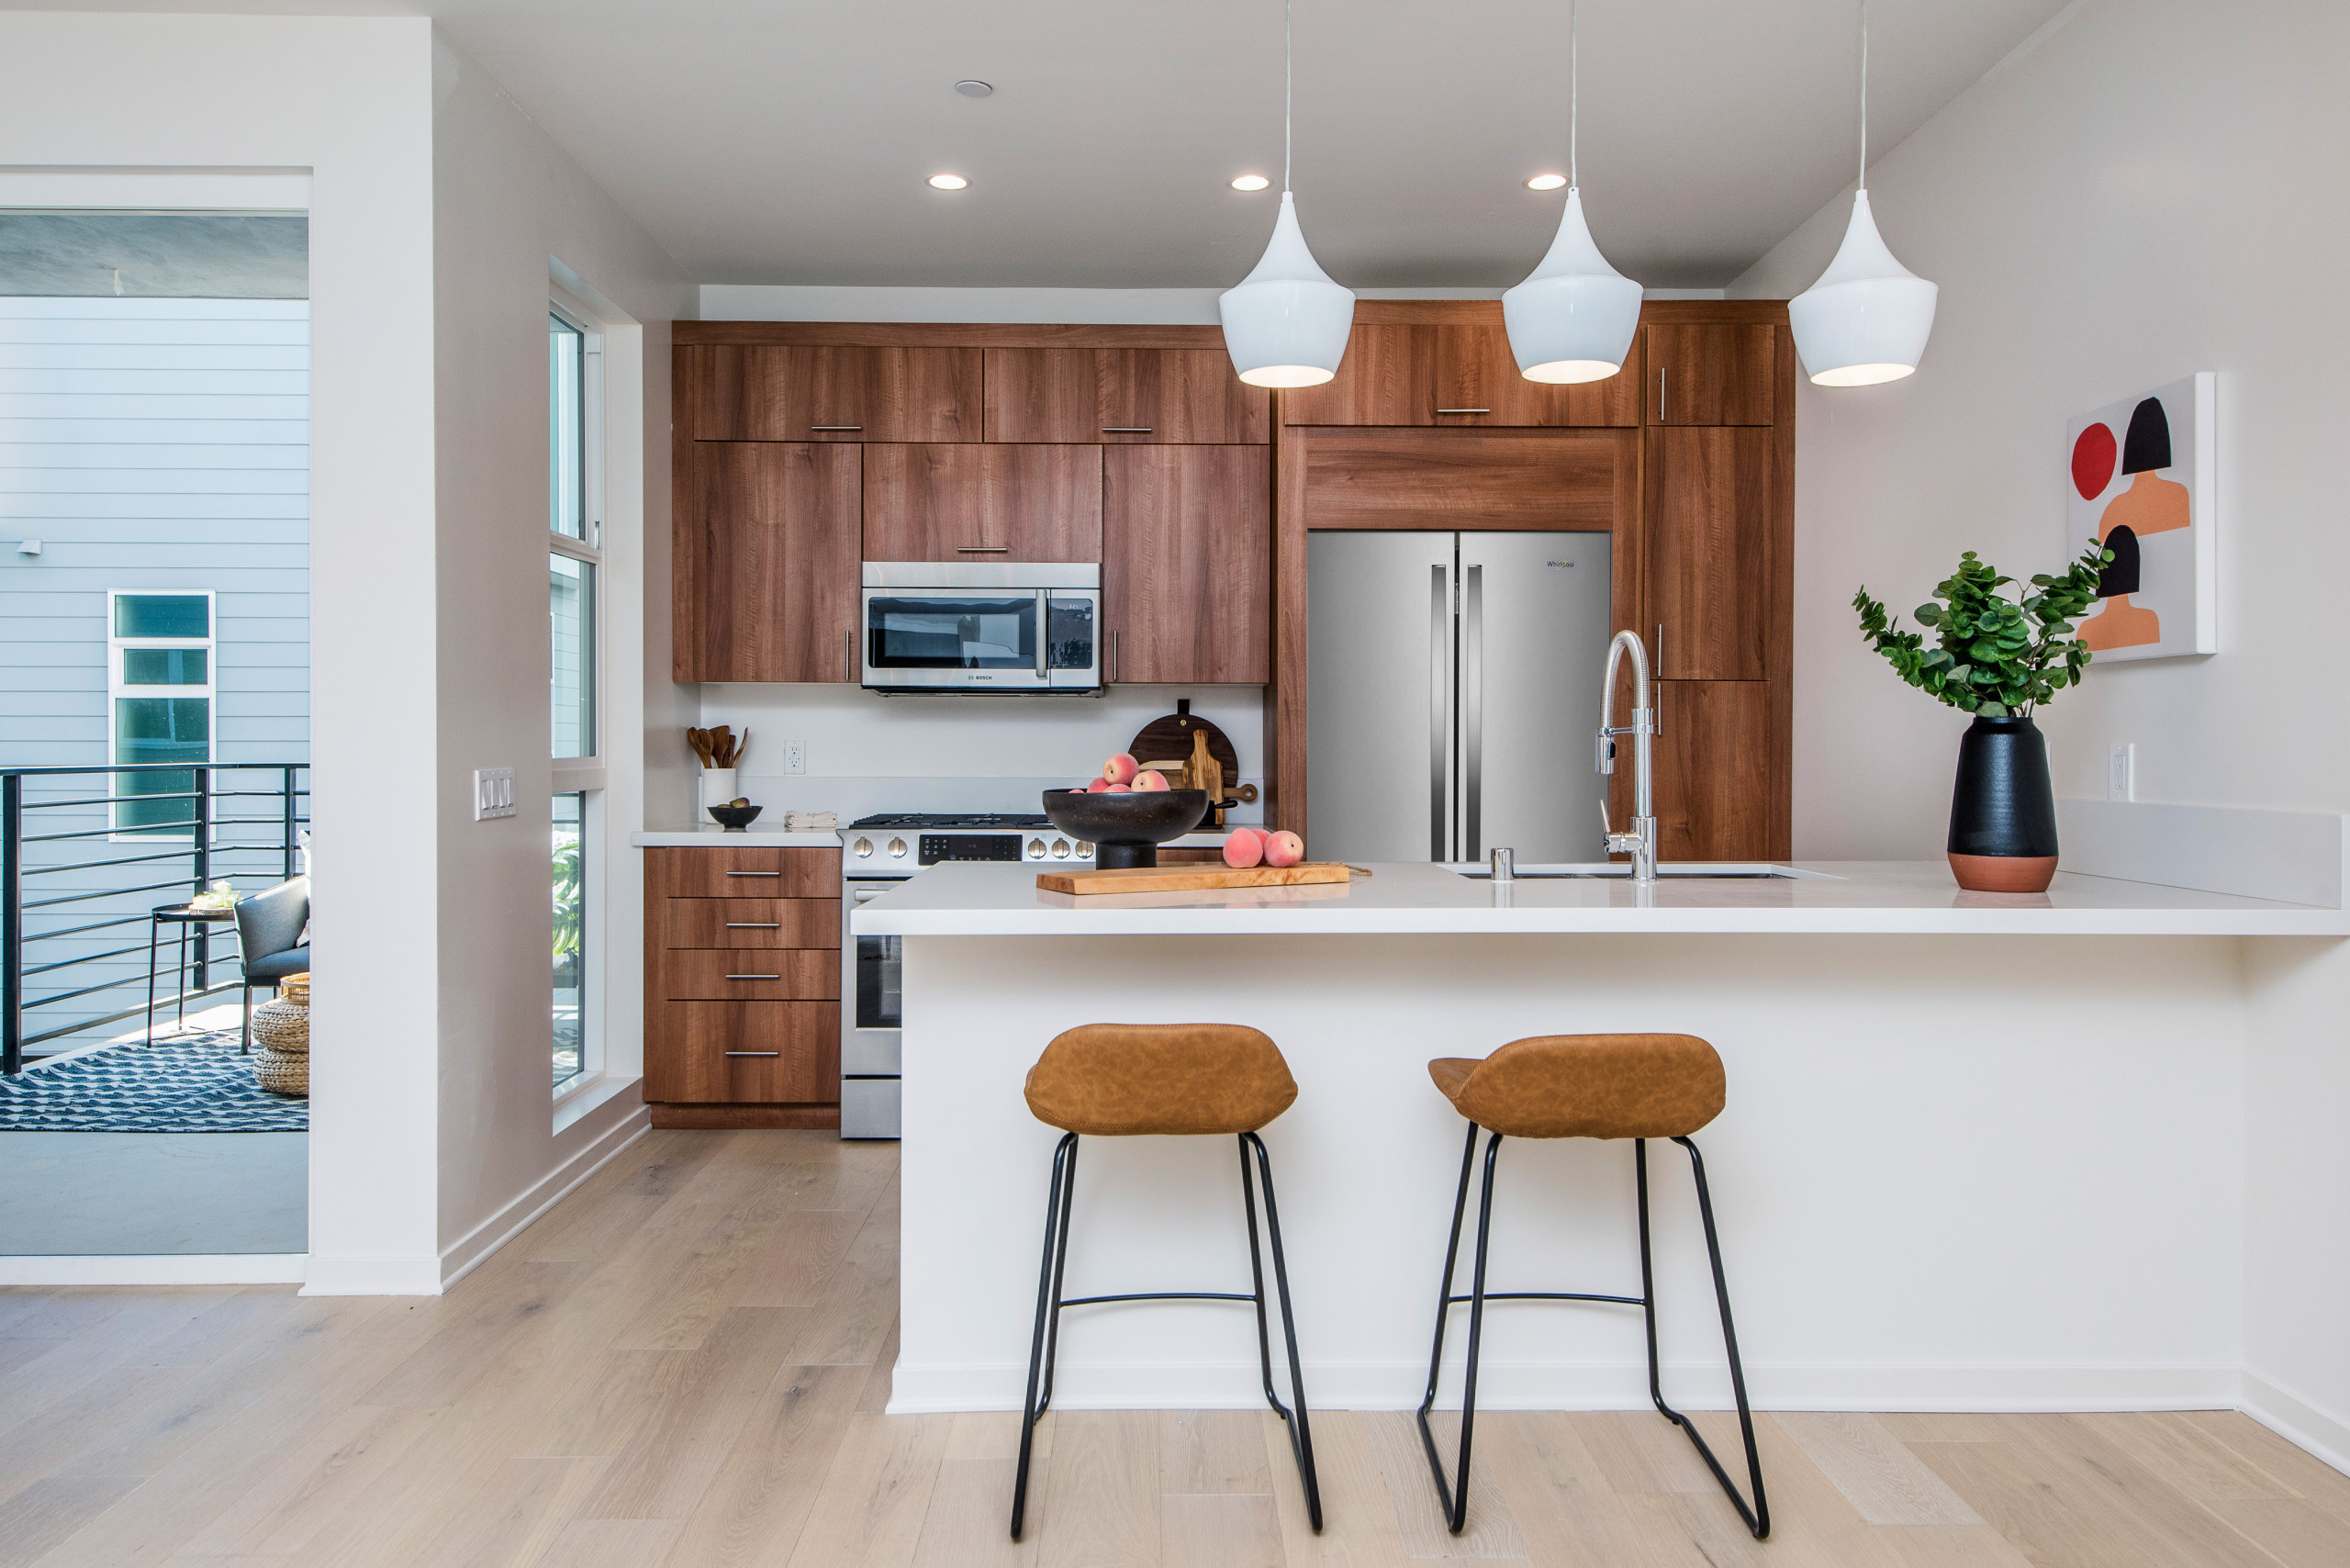 75 Beautiful Kitchen With Dark Wood Cabinets Pictures Ideas February 2021 Houzz